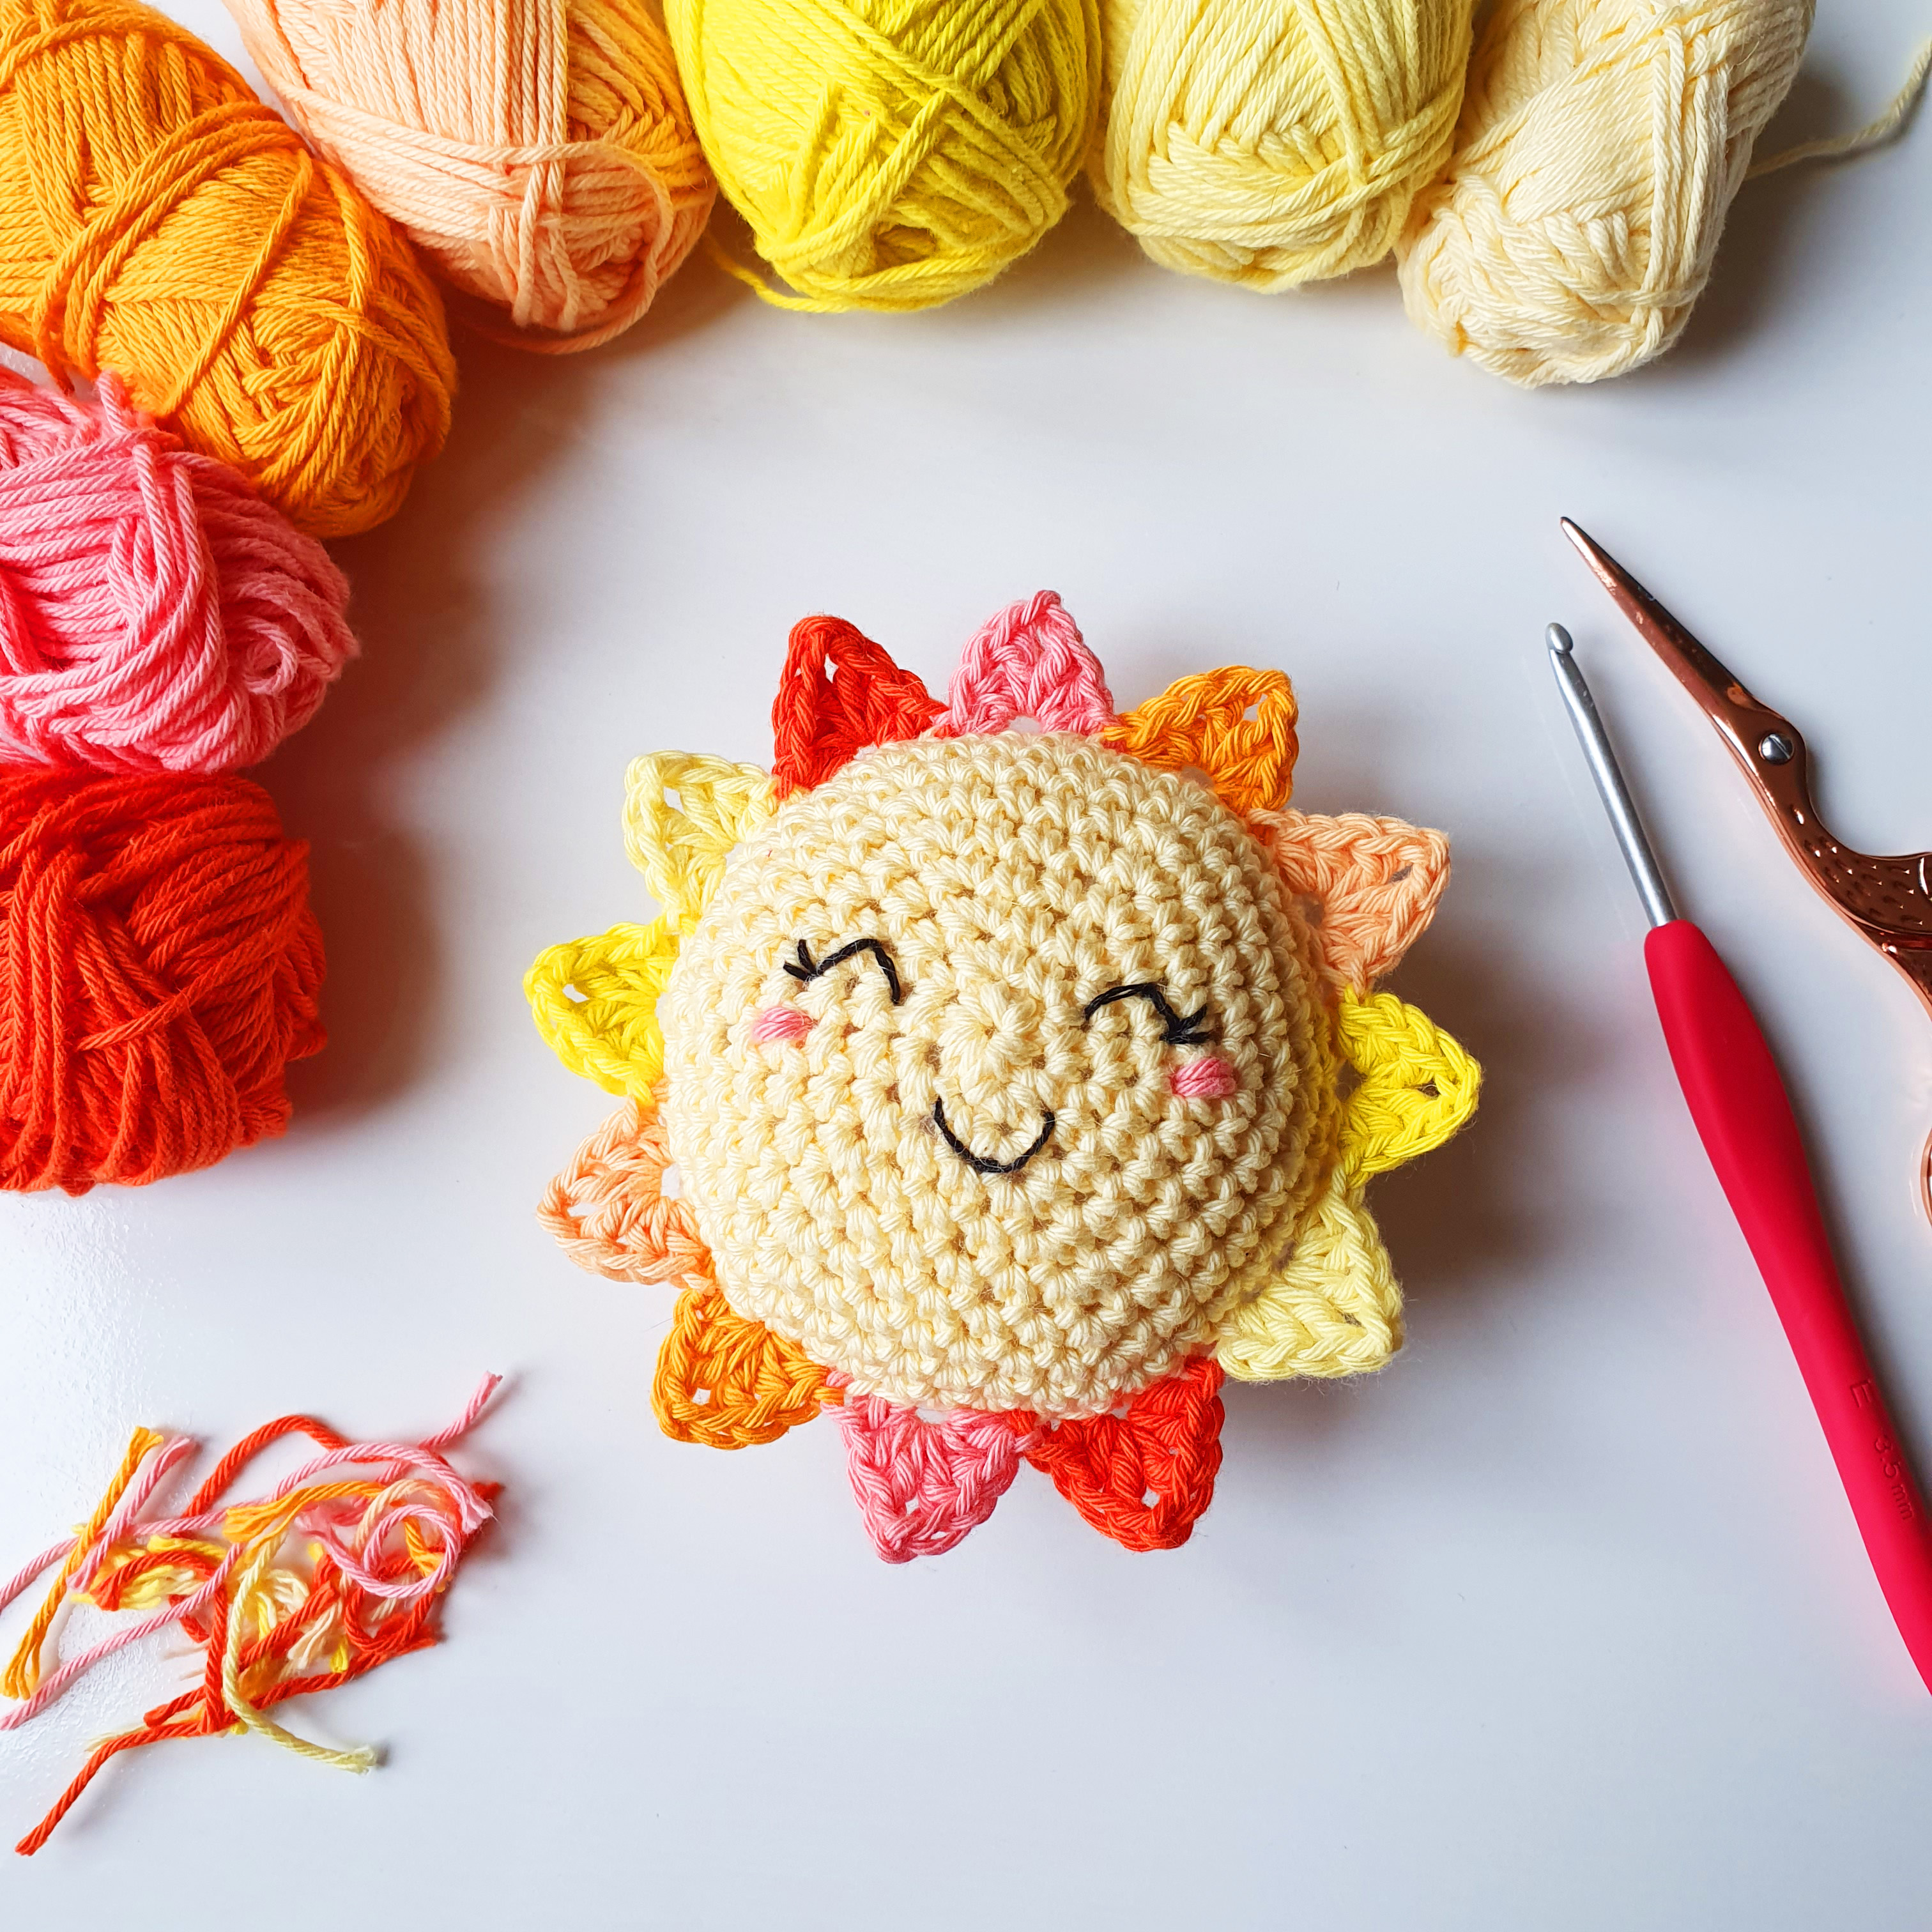 Smiley Amigurumi Sunshine